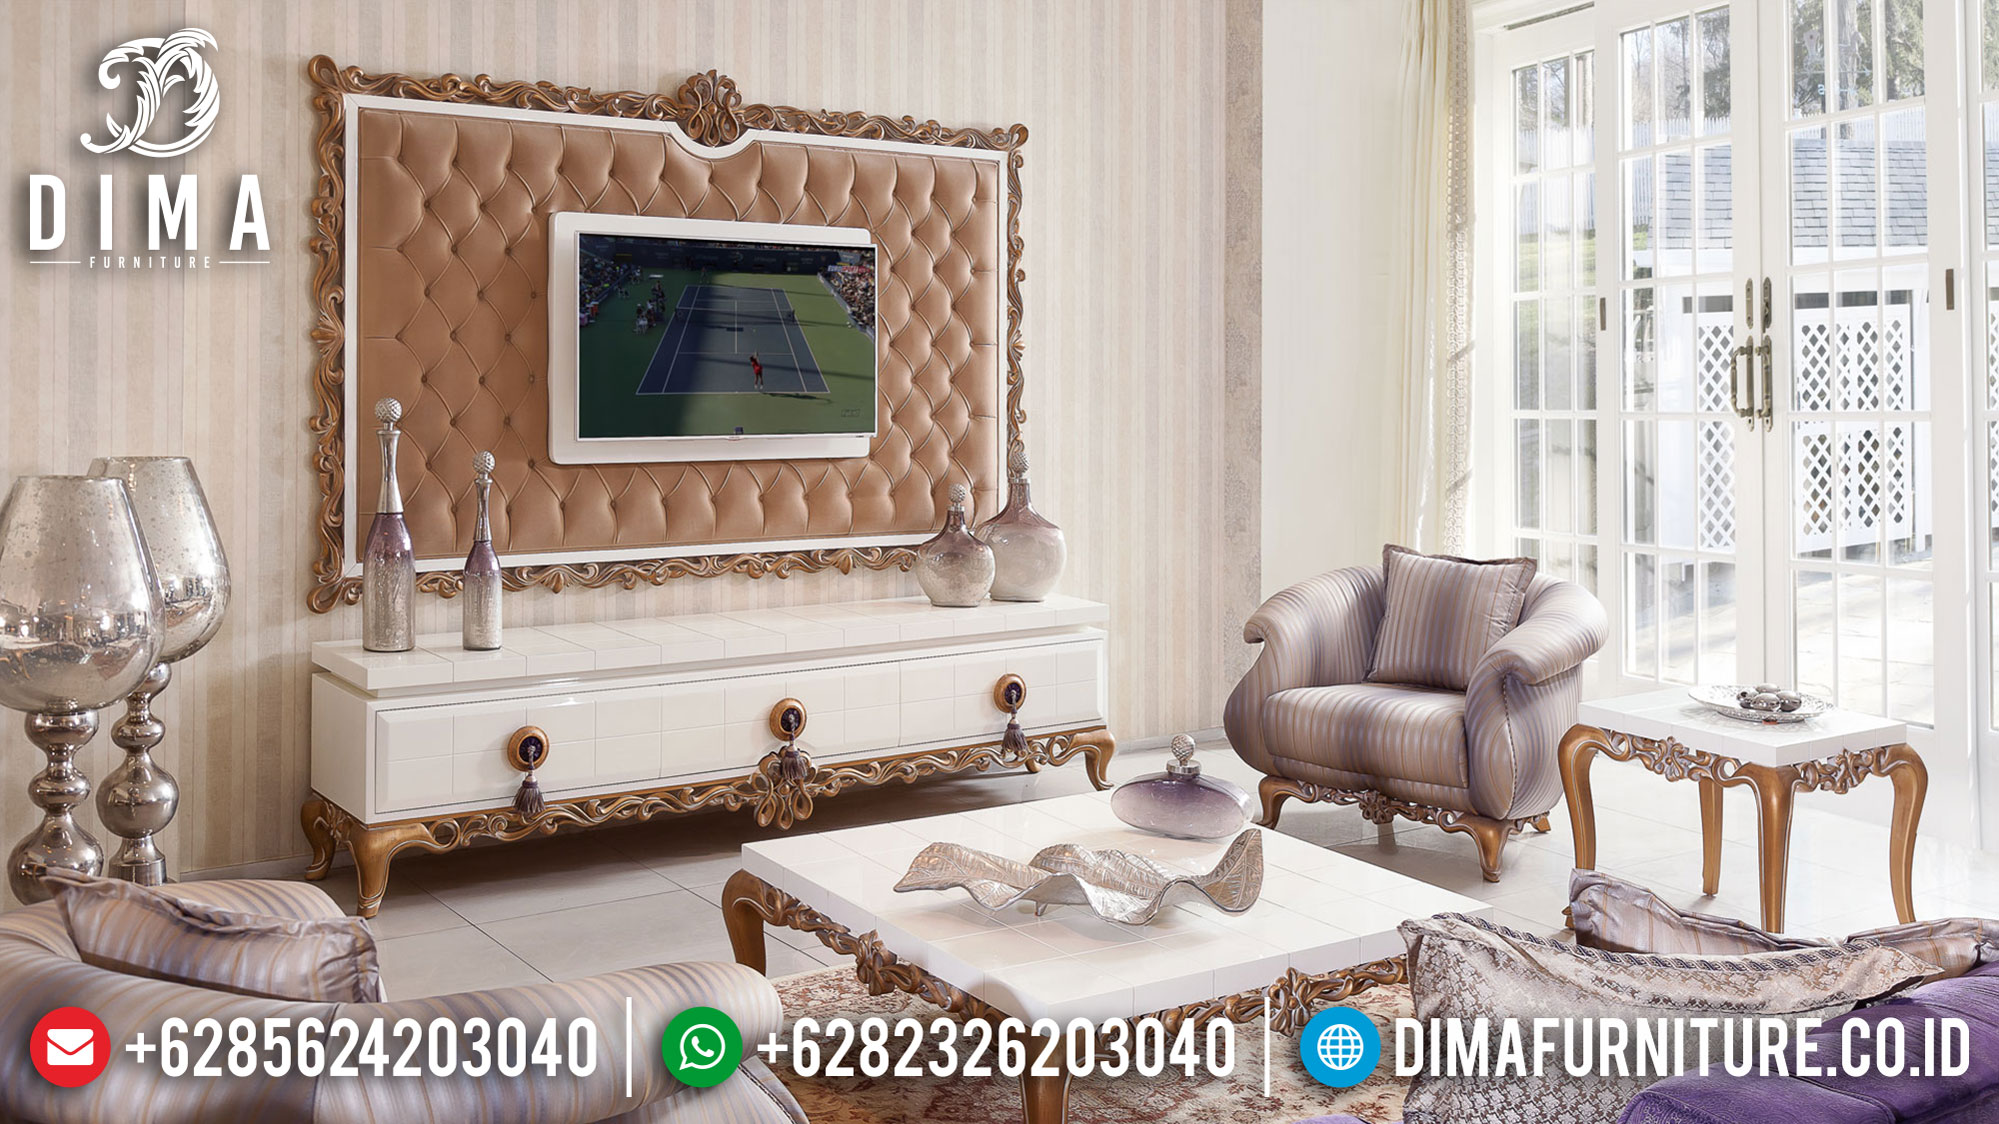 New Design Meja TV Mewah Putih Duco Furniture Jepara Luxury Update 2020 TTJ-1028